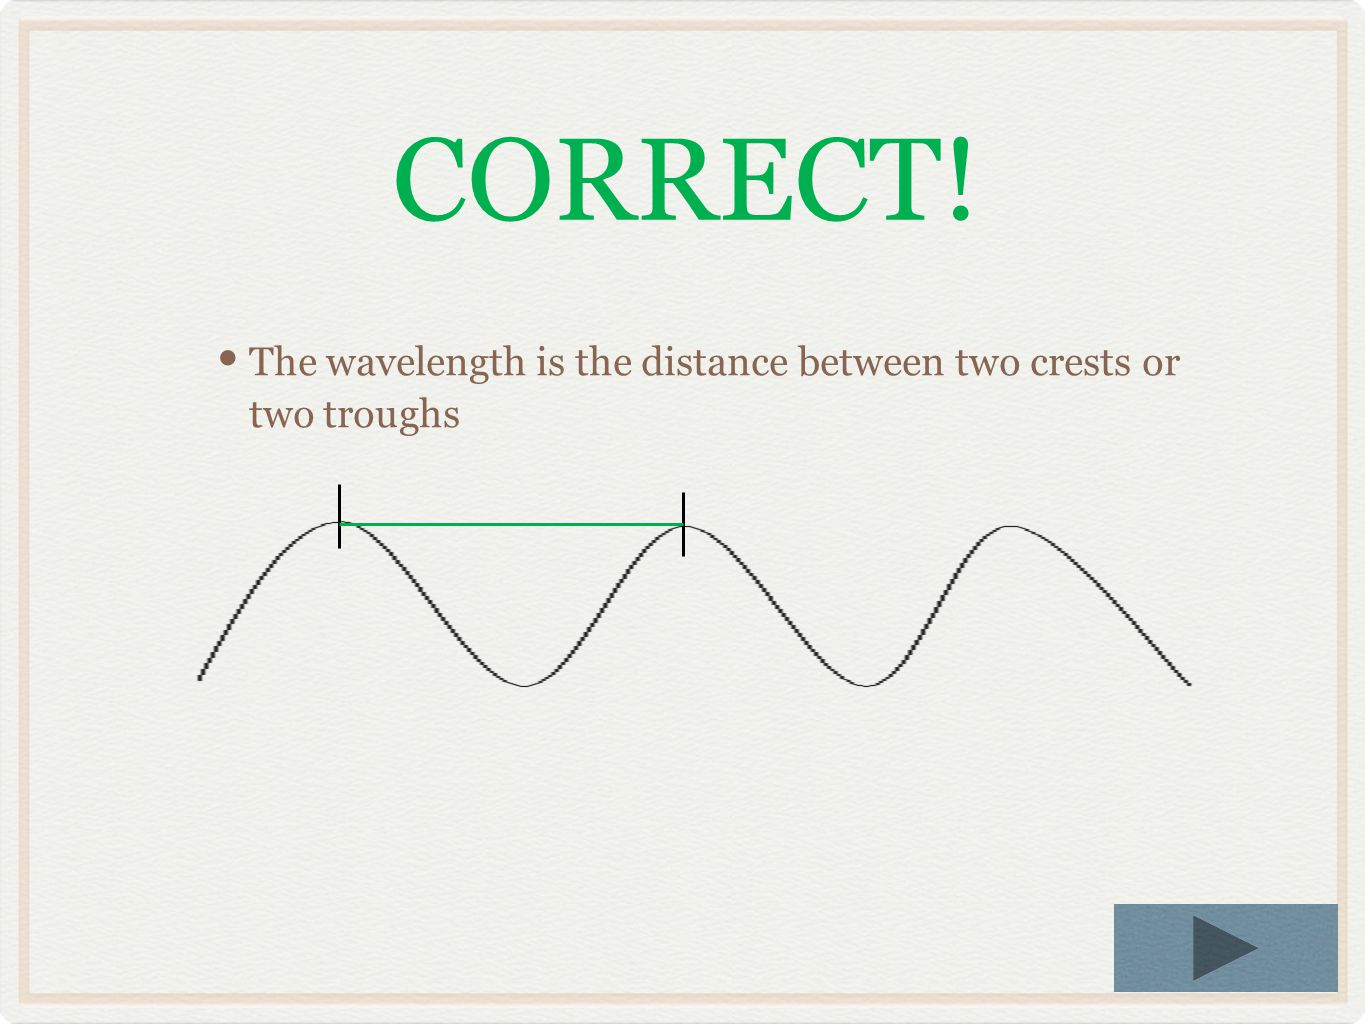 CORRECT! The wavelength is the distance between two crests or two troughs